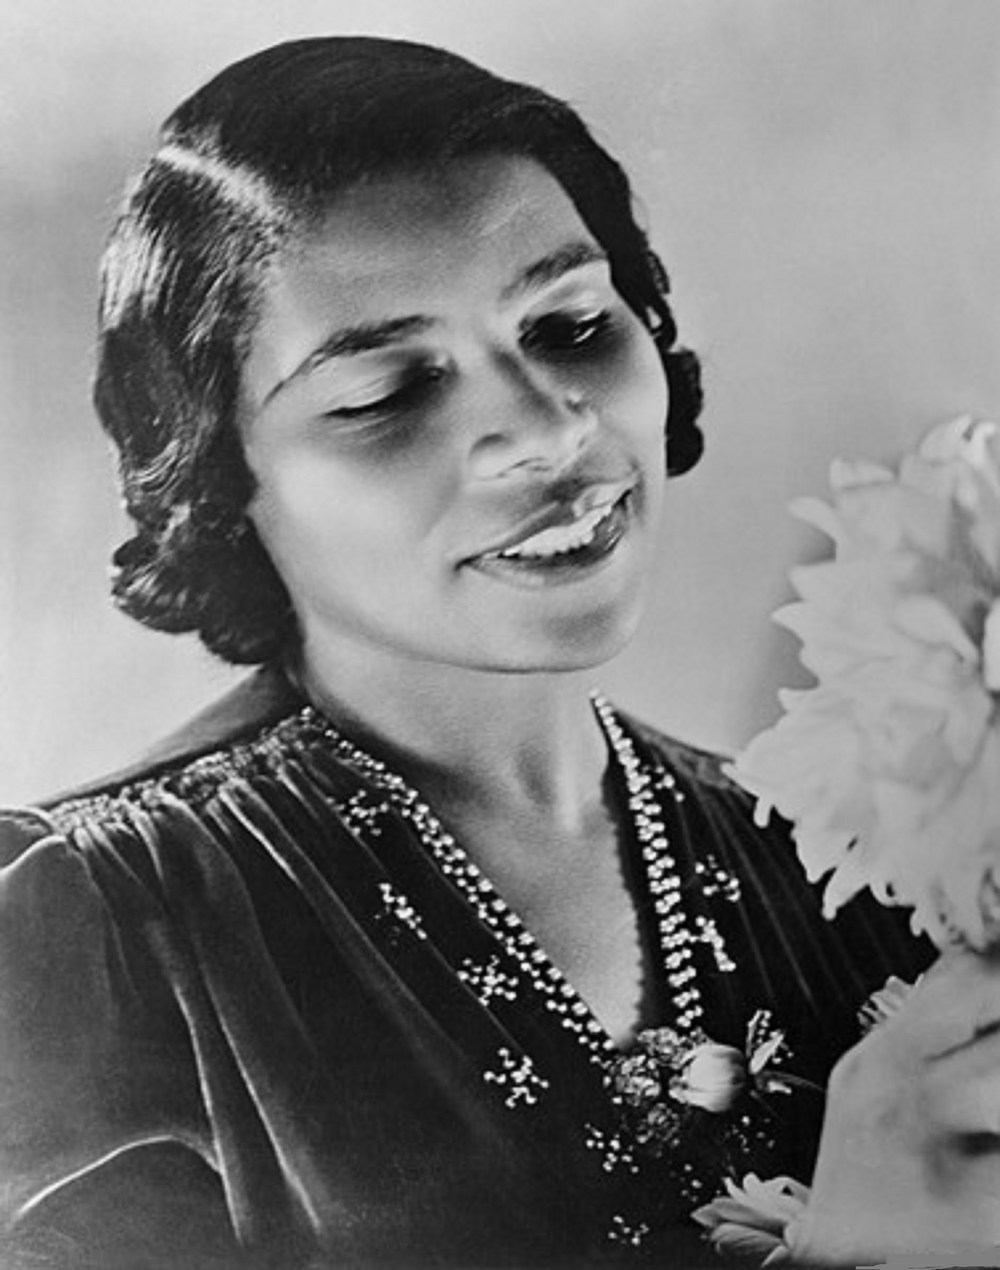 Deemed one of the finest contraltos of her time, Marian Anderson (1897-1993) became the first African American to perform with the New York Metropolitan Opera in 1955.